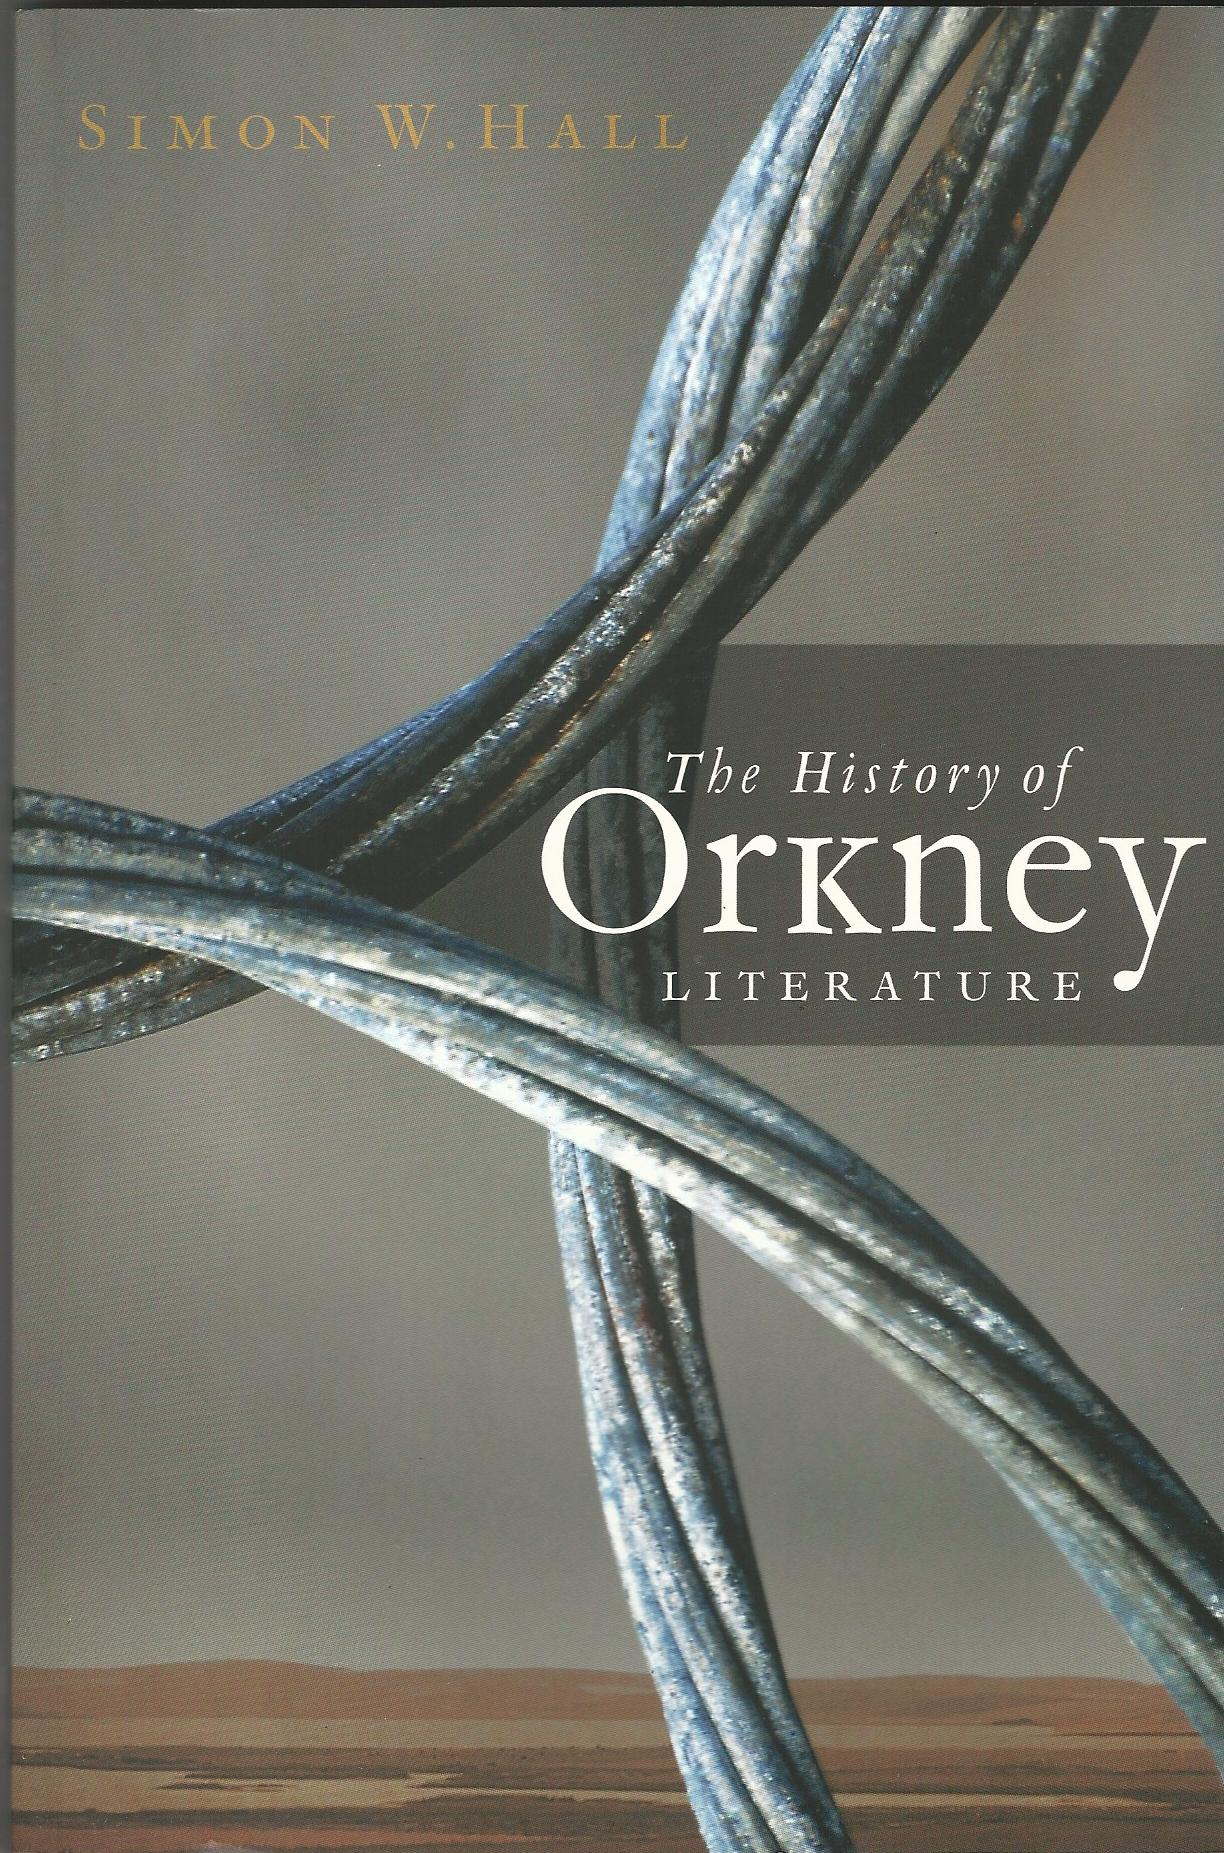 Image for The History of Orkney Literature.